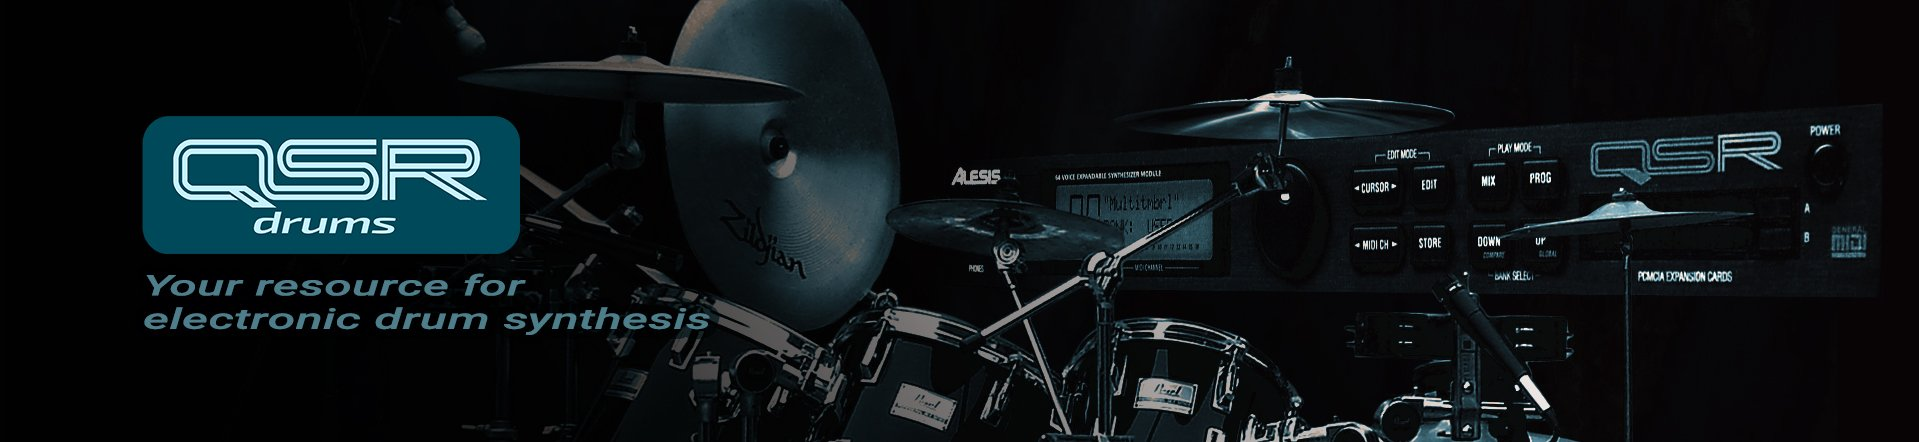 QSR drums home page banner image